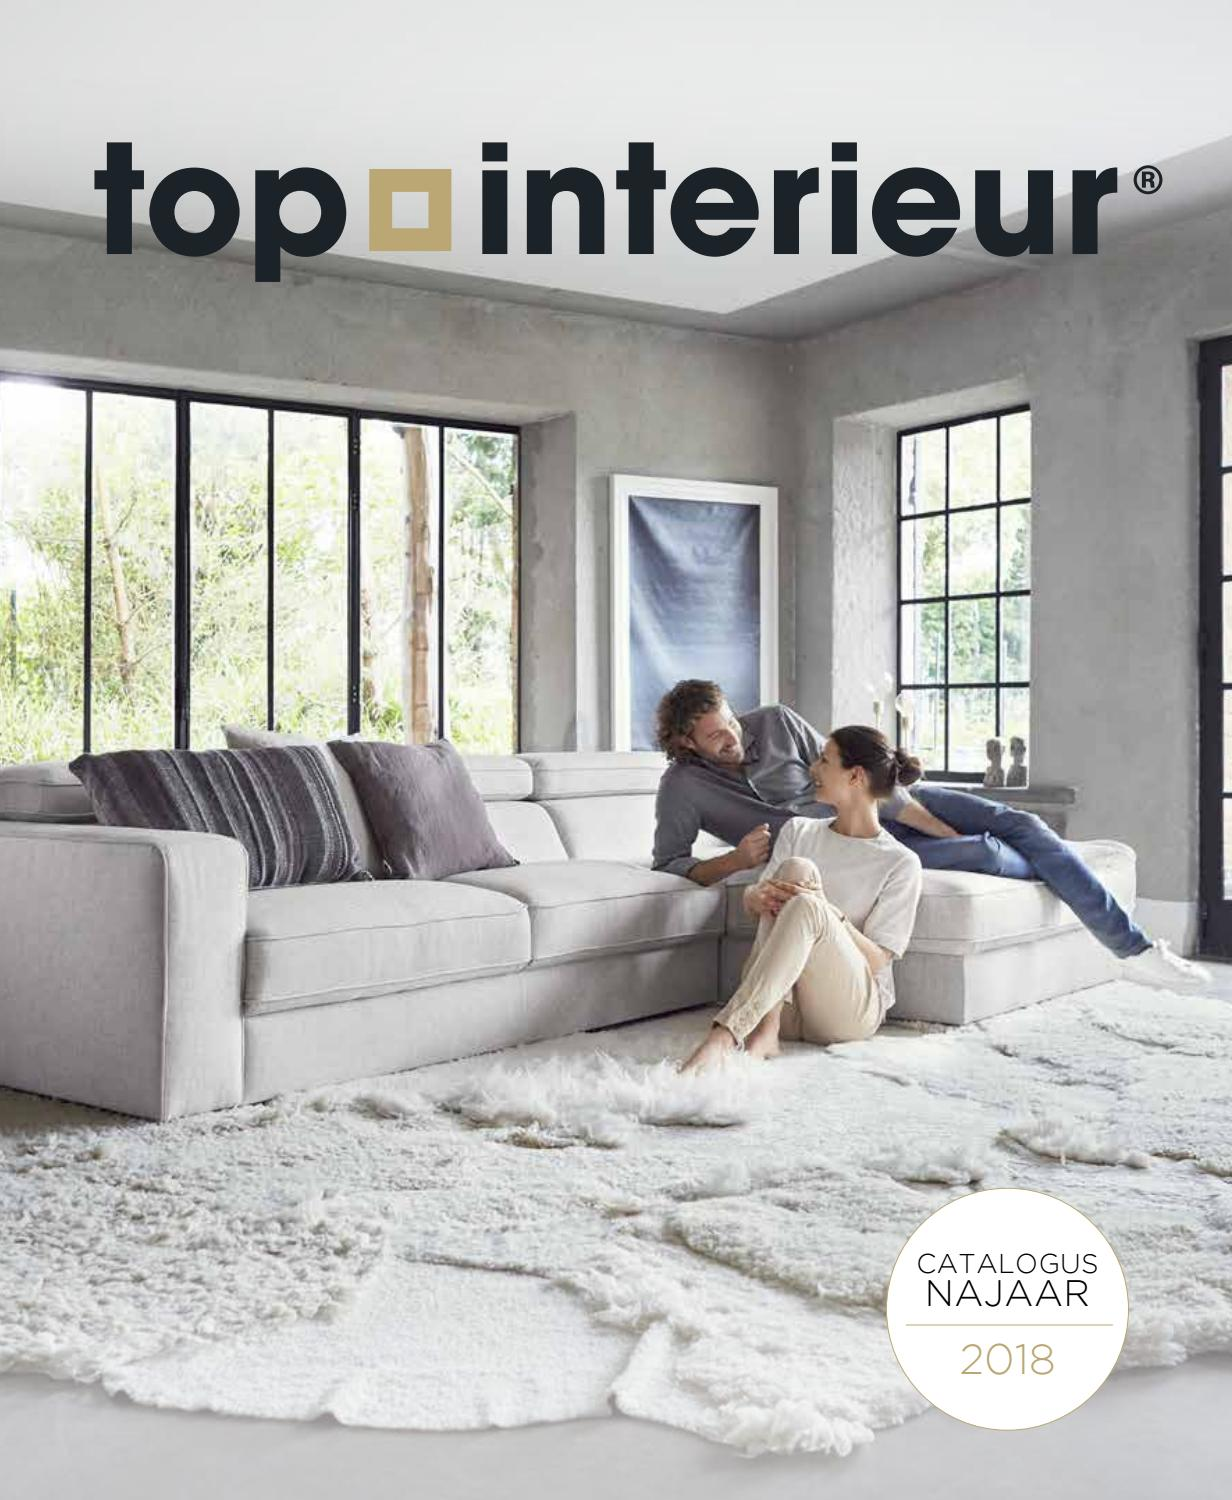 Natuzzi Wit Leren Bank.Catalogus Top Interieur Izegem Najaar 2018 By Topinterieur Issuu